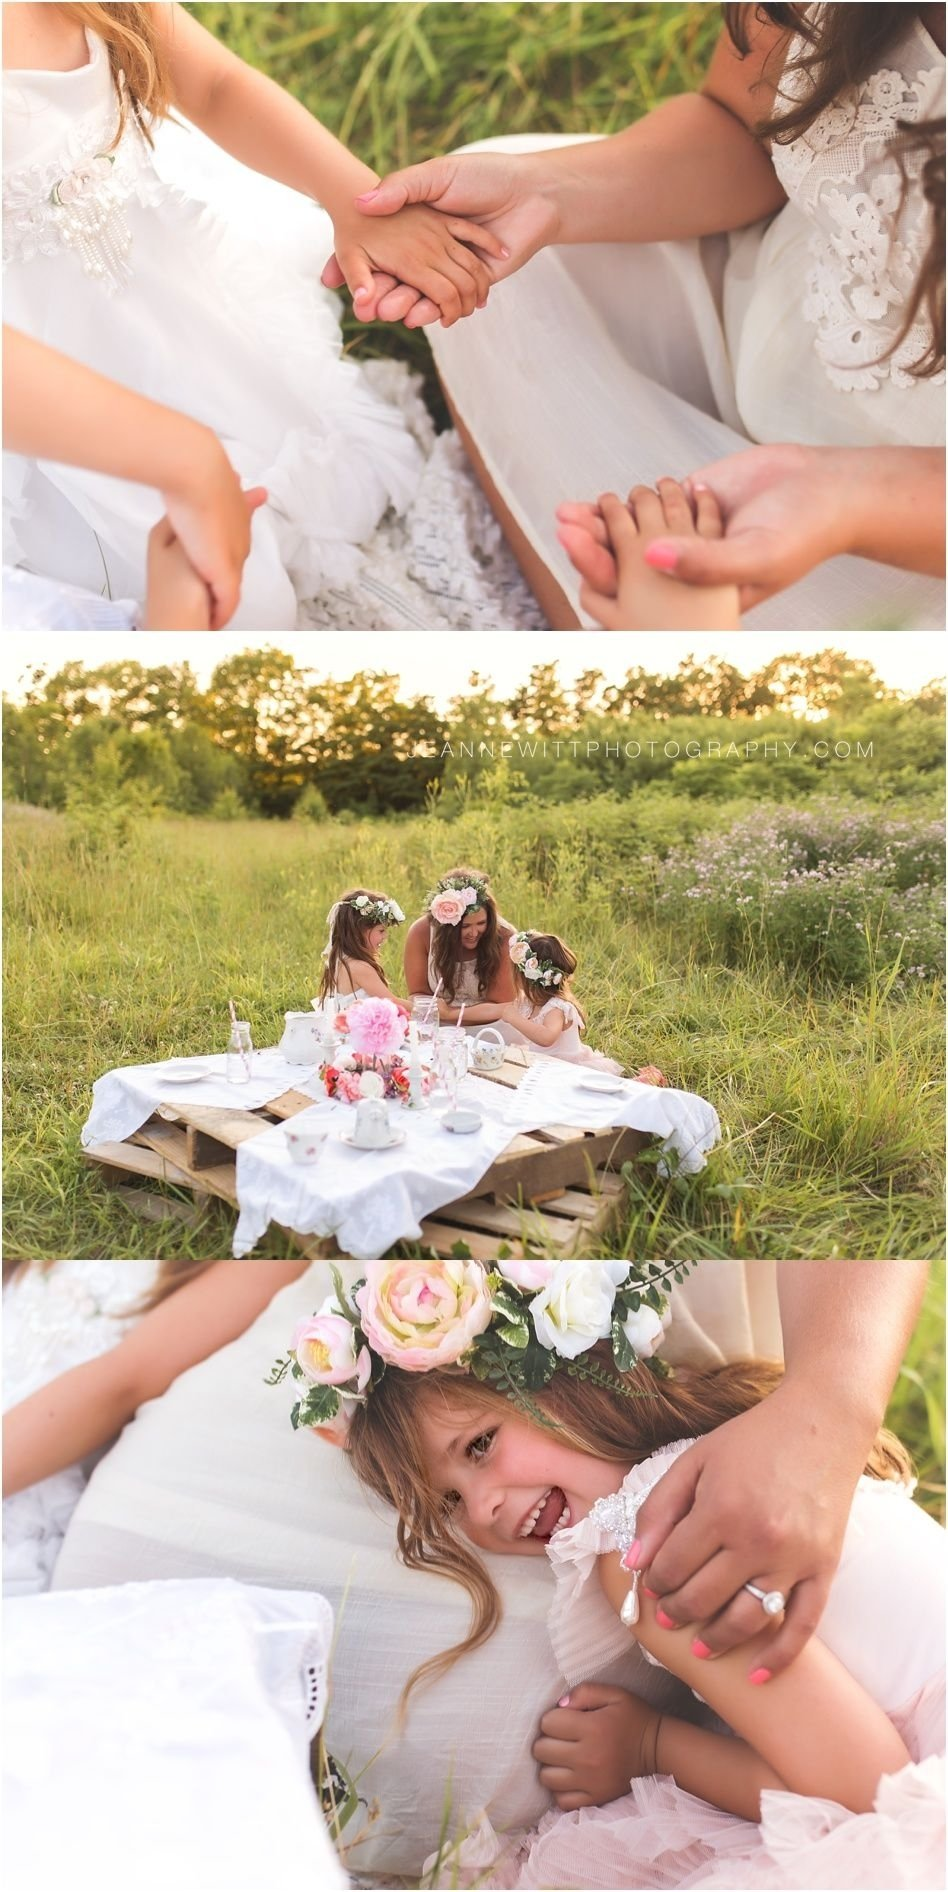 10 Amazing Mommy And Me Picture Ideas styled shoot mommy and me photo ideas tea party with mommy my 2021